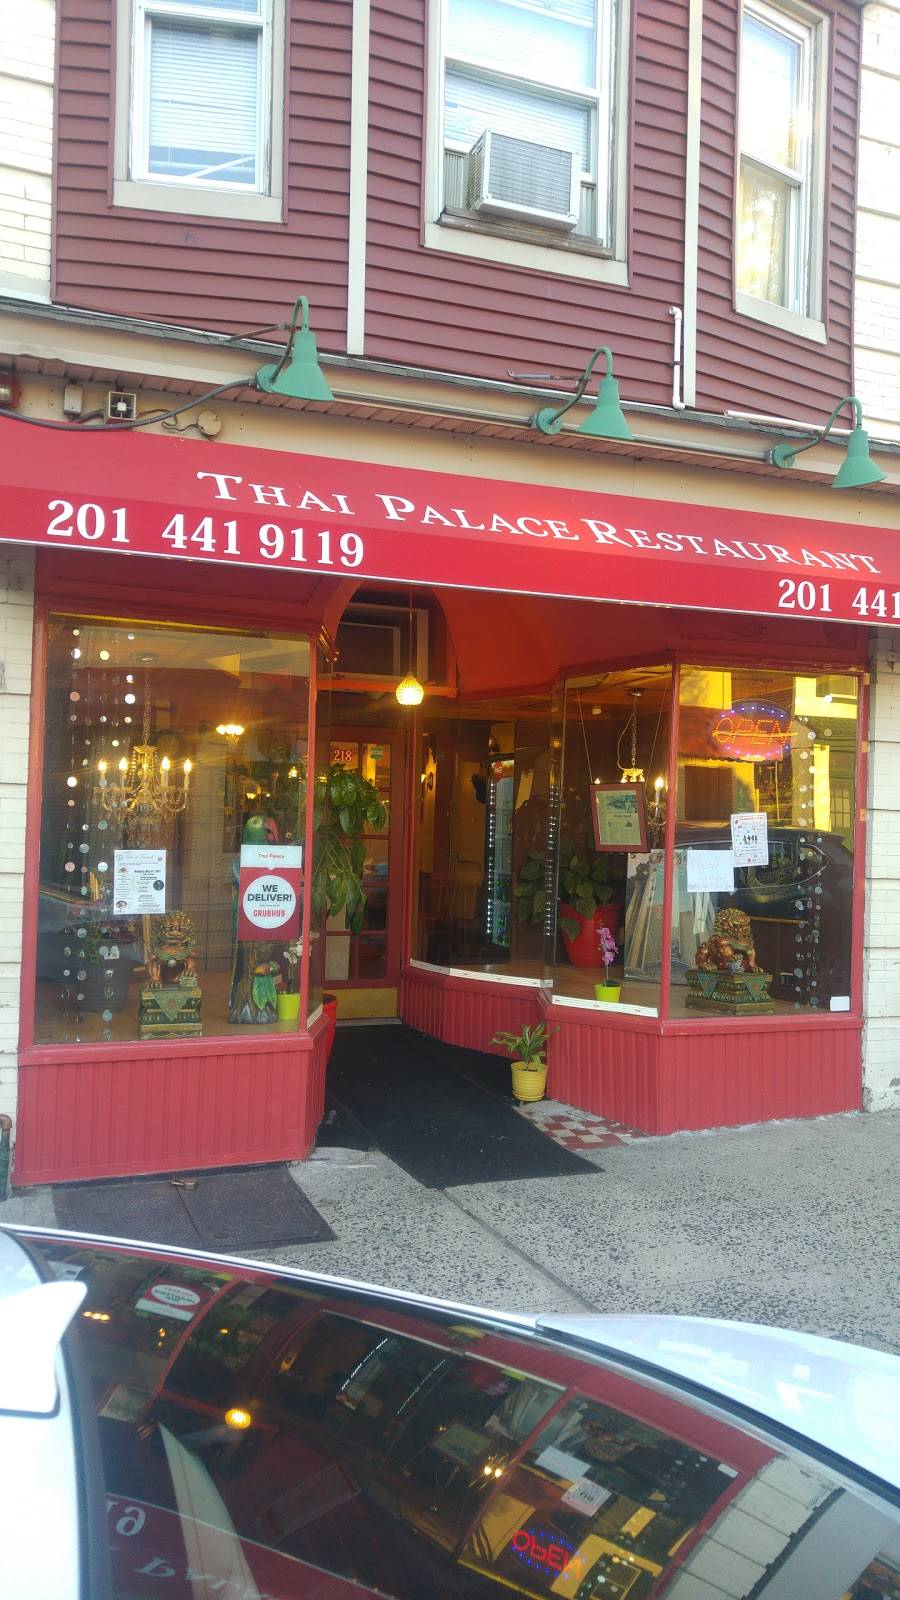 Thai Palace by DAO | meal delivery | 218 Main St, Ridgefield Park, NJ 07660, USA | 2014419119 OR +1 201-441-9119